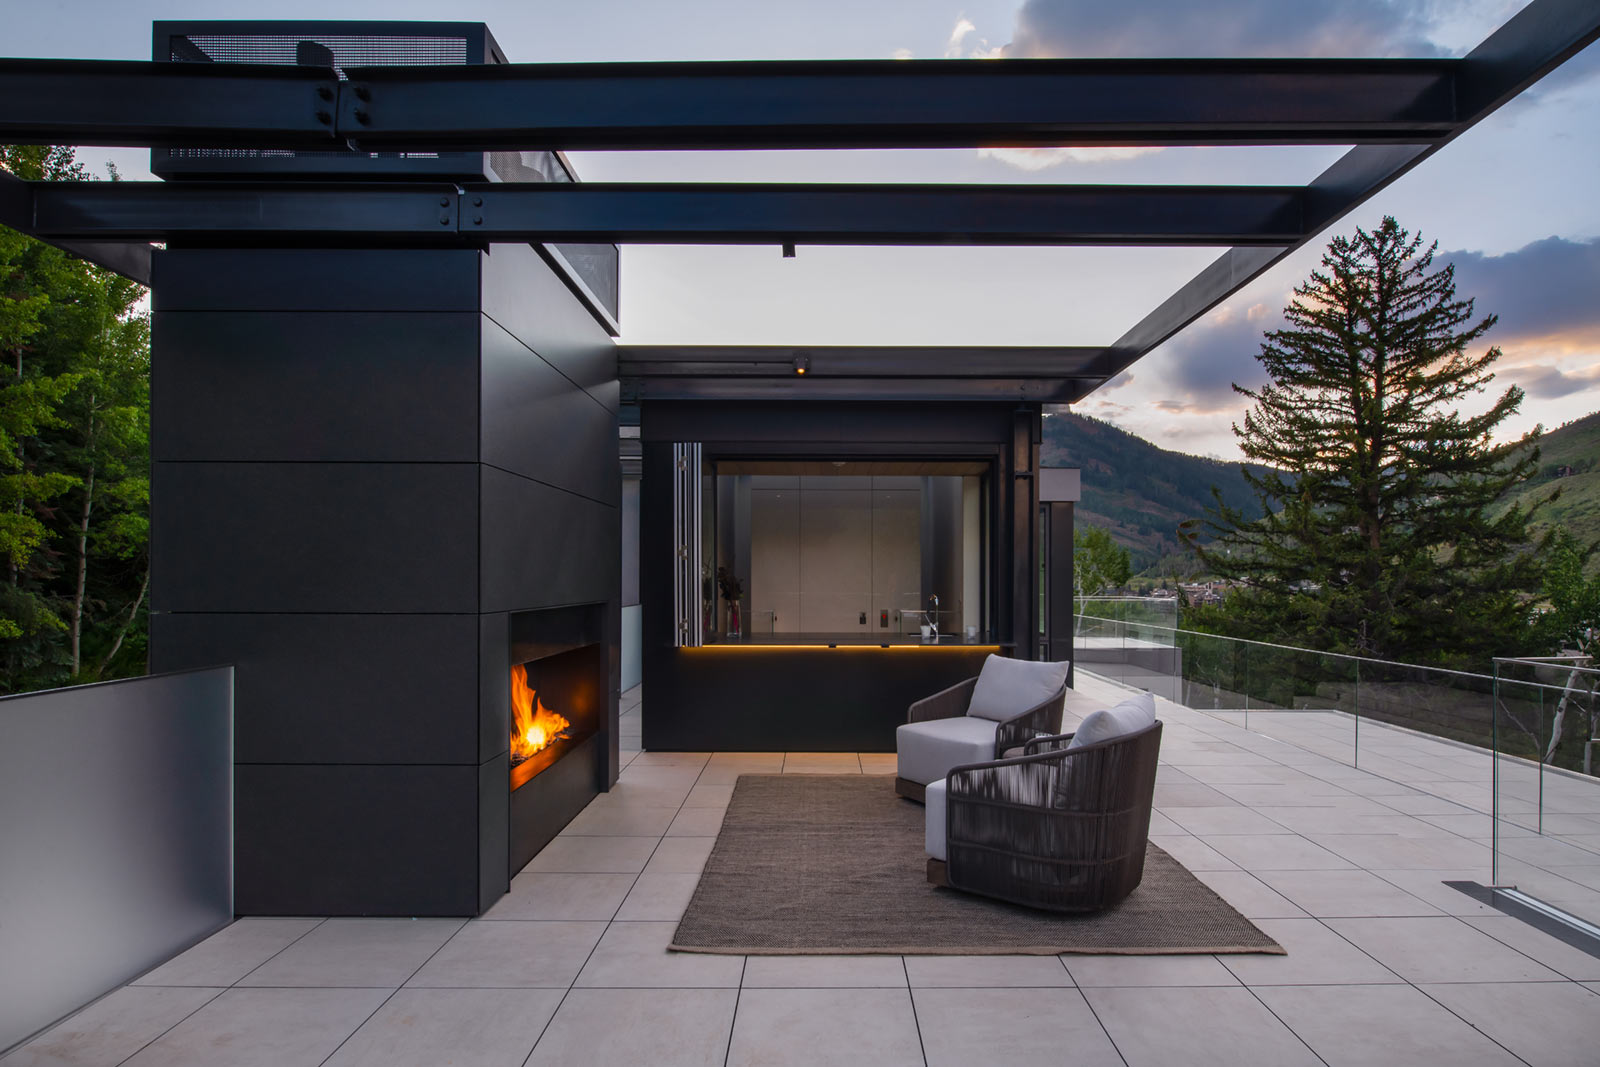 165 FOREST ROAD VAIL COLORADO ROOFTOP BAR 1 EXPANSIVE OUTDOOR LIVING SPACE